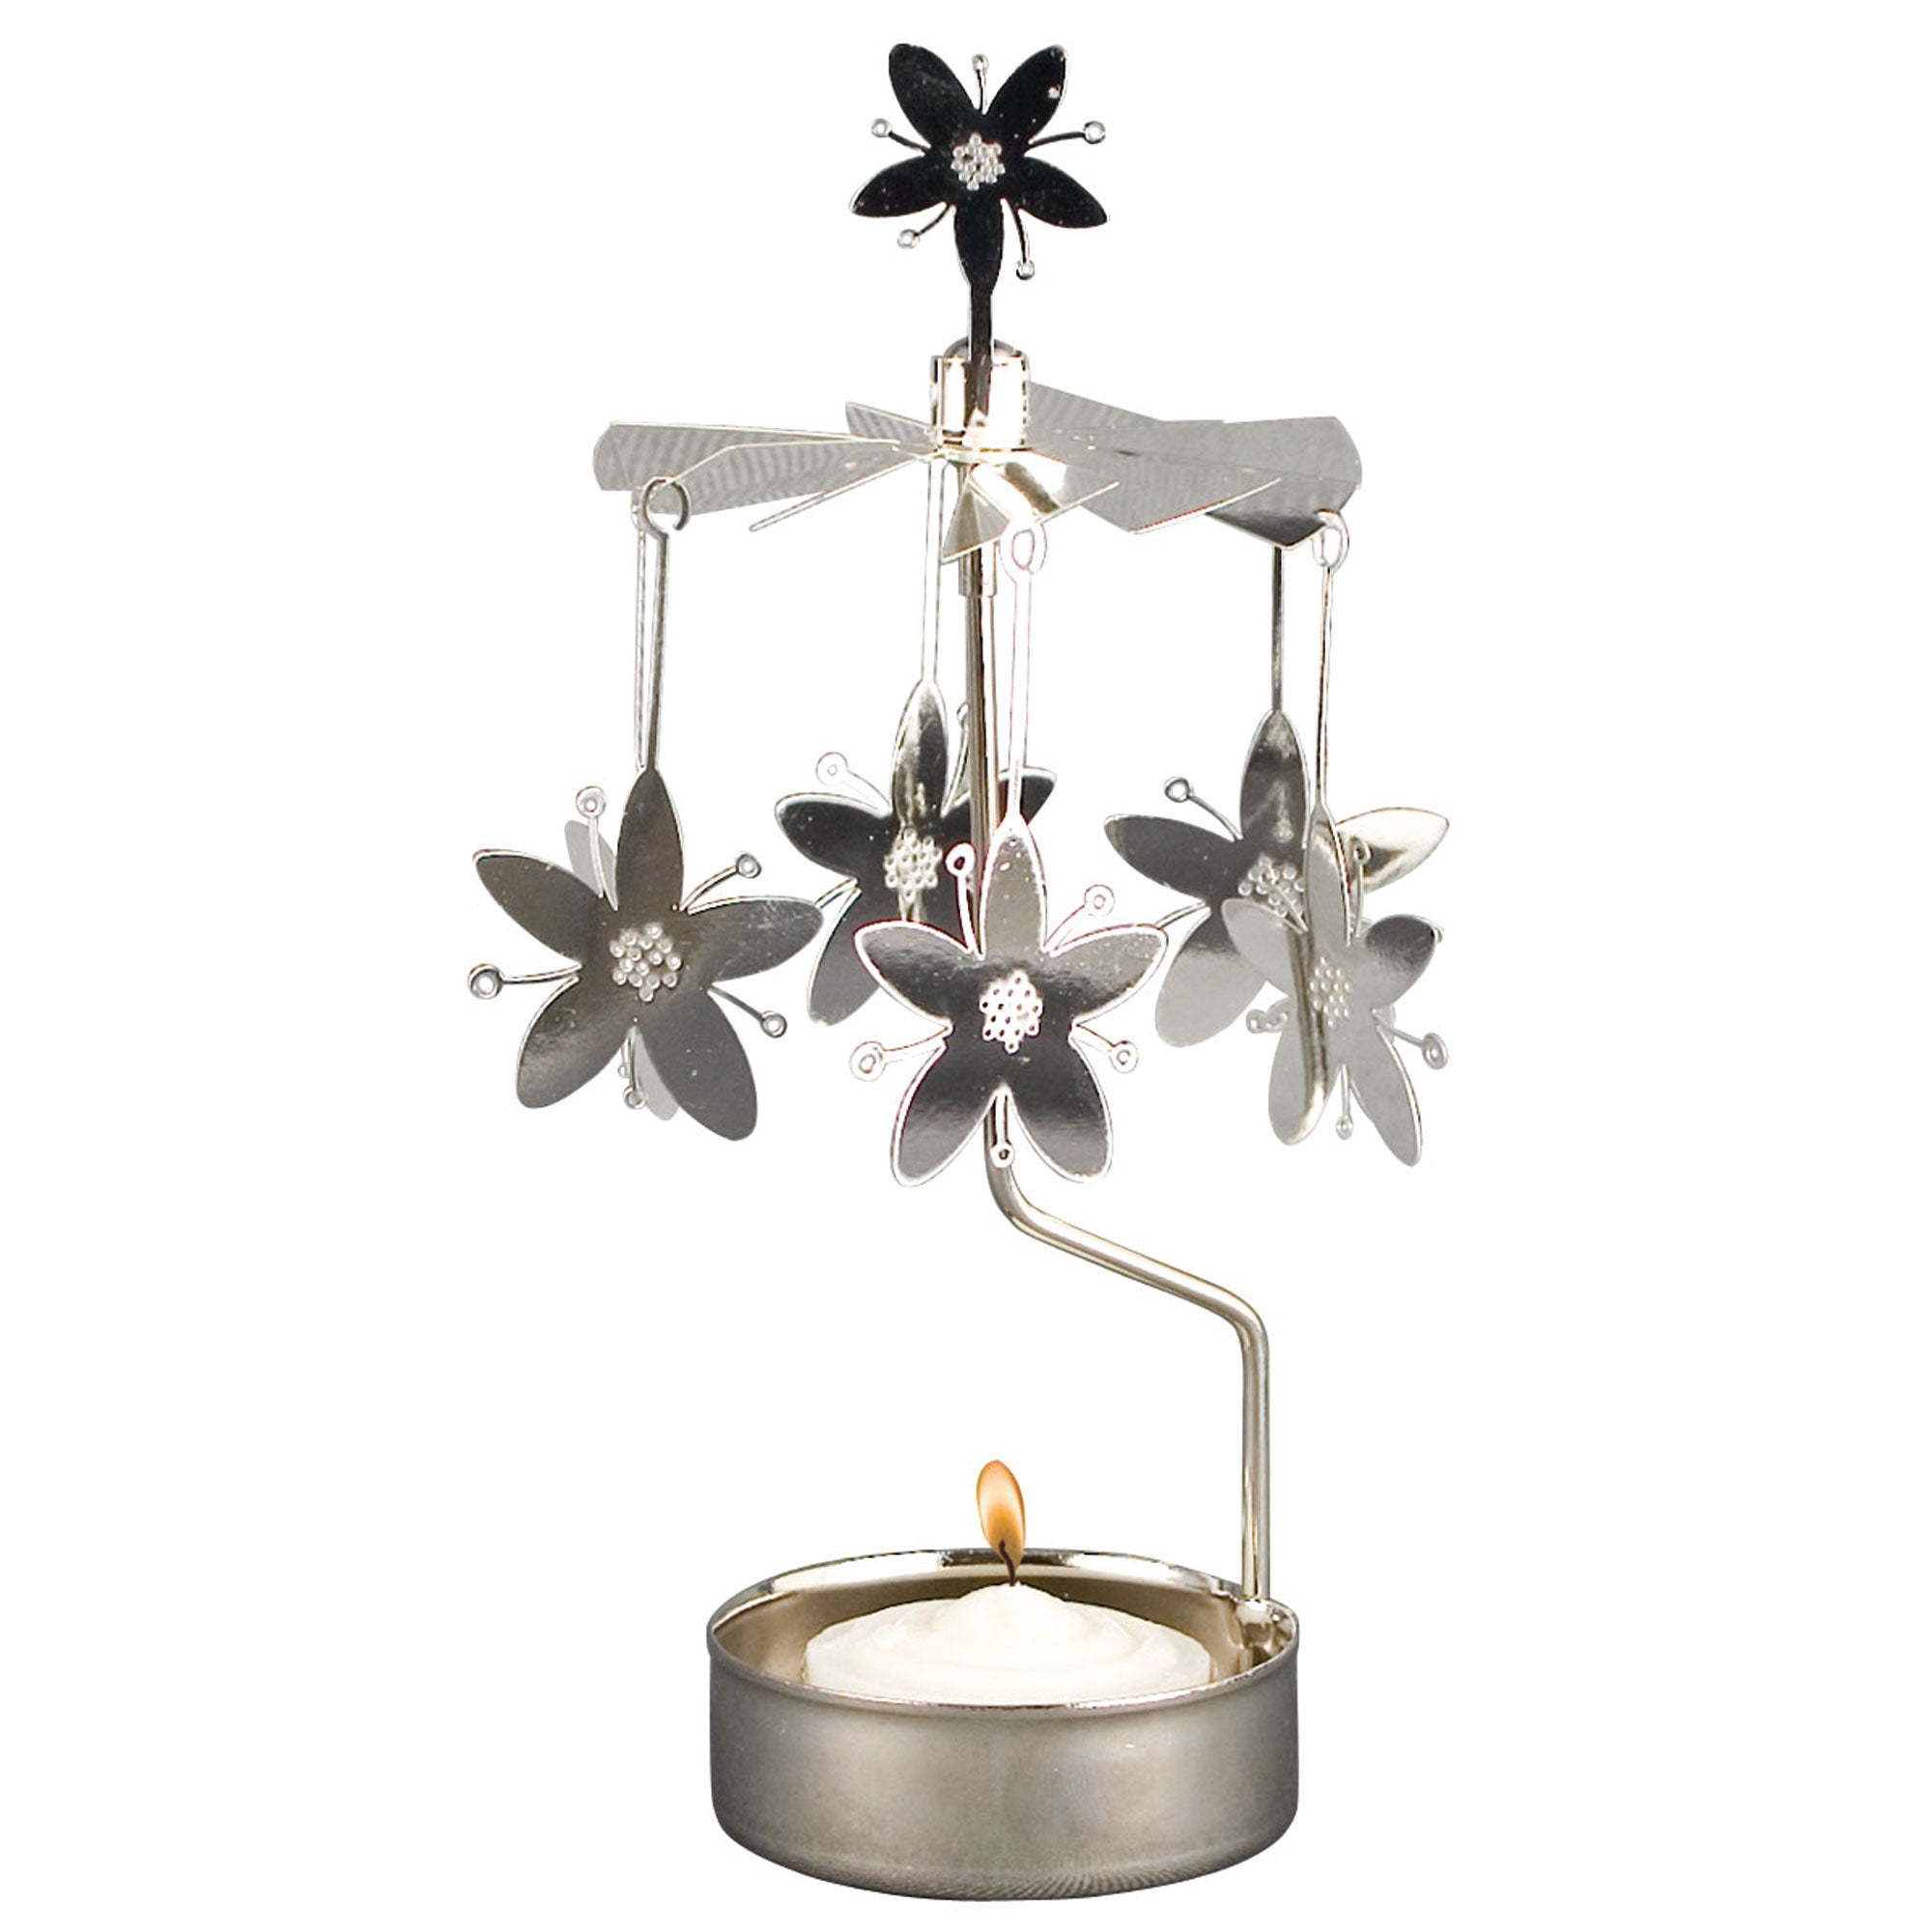 Flower Rotary Candle Holder - Northlight Homestore